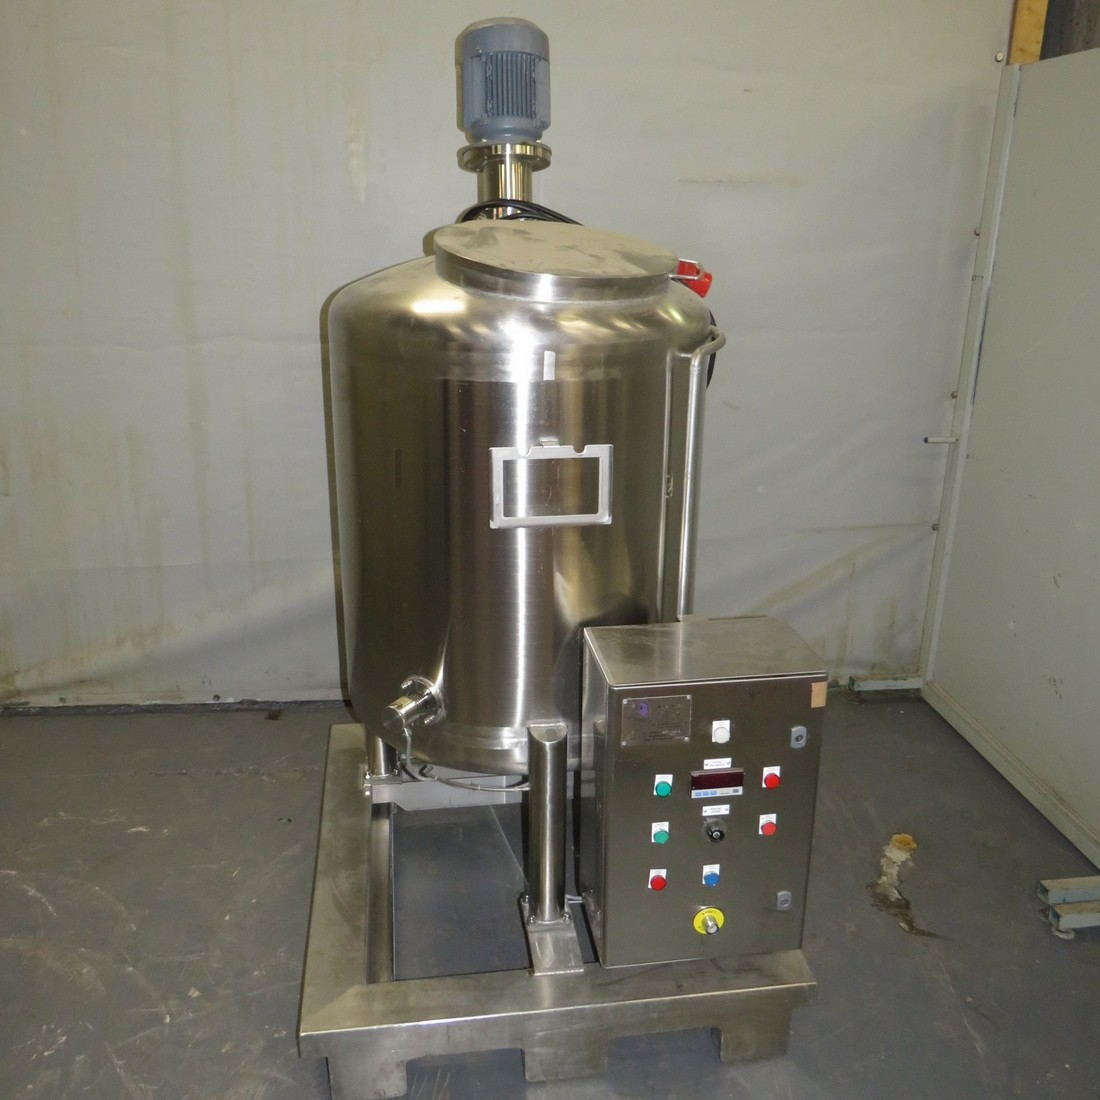 R6MA6163 Stainless steel Mixing tank - 400 liters